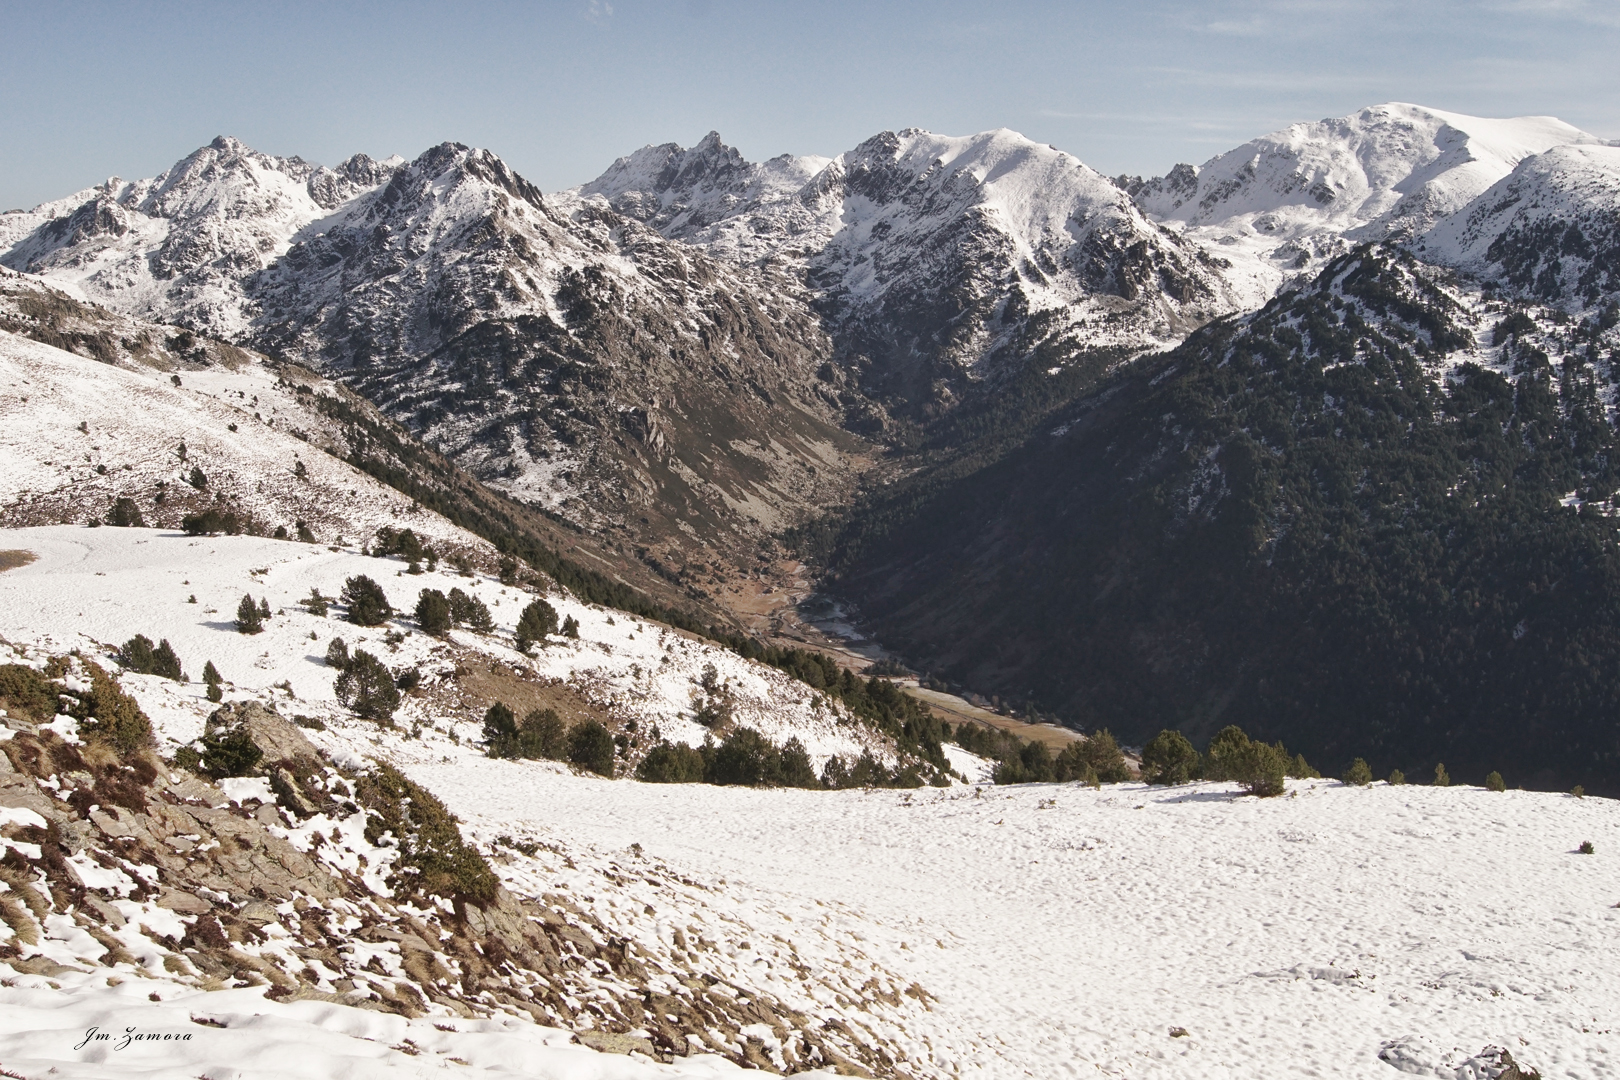 00027 Vall d'Incles